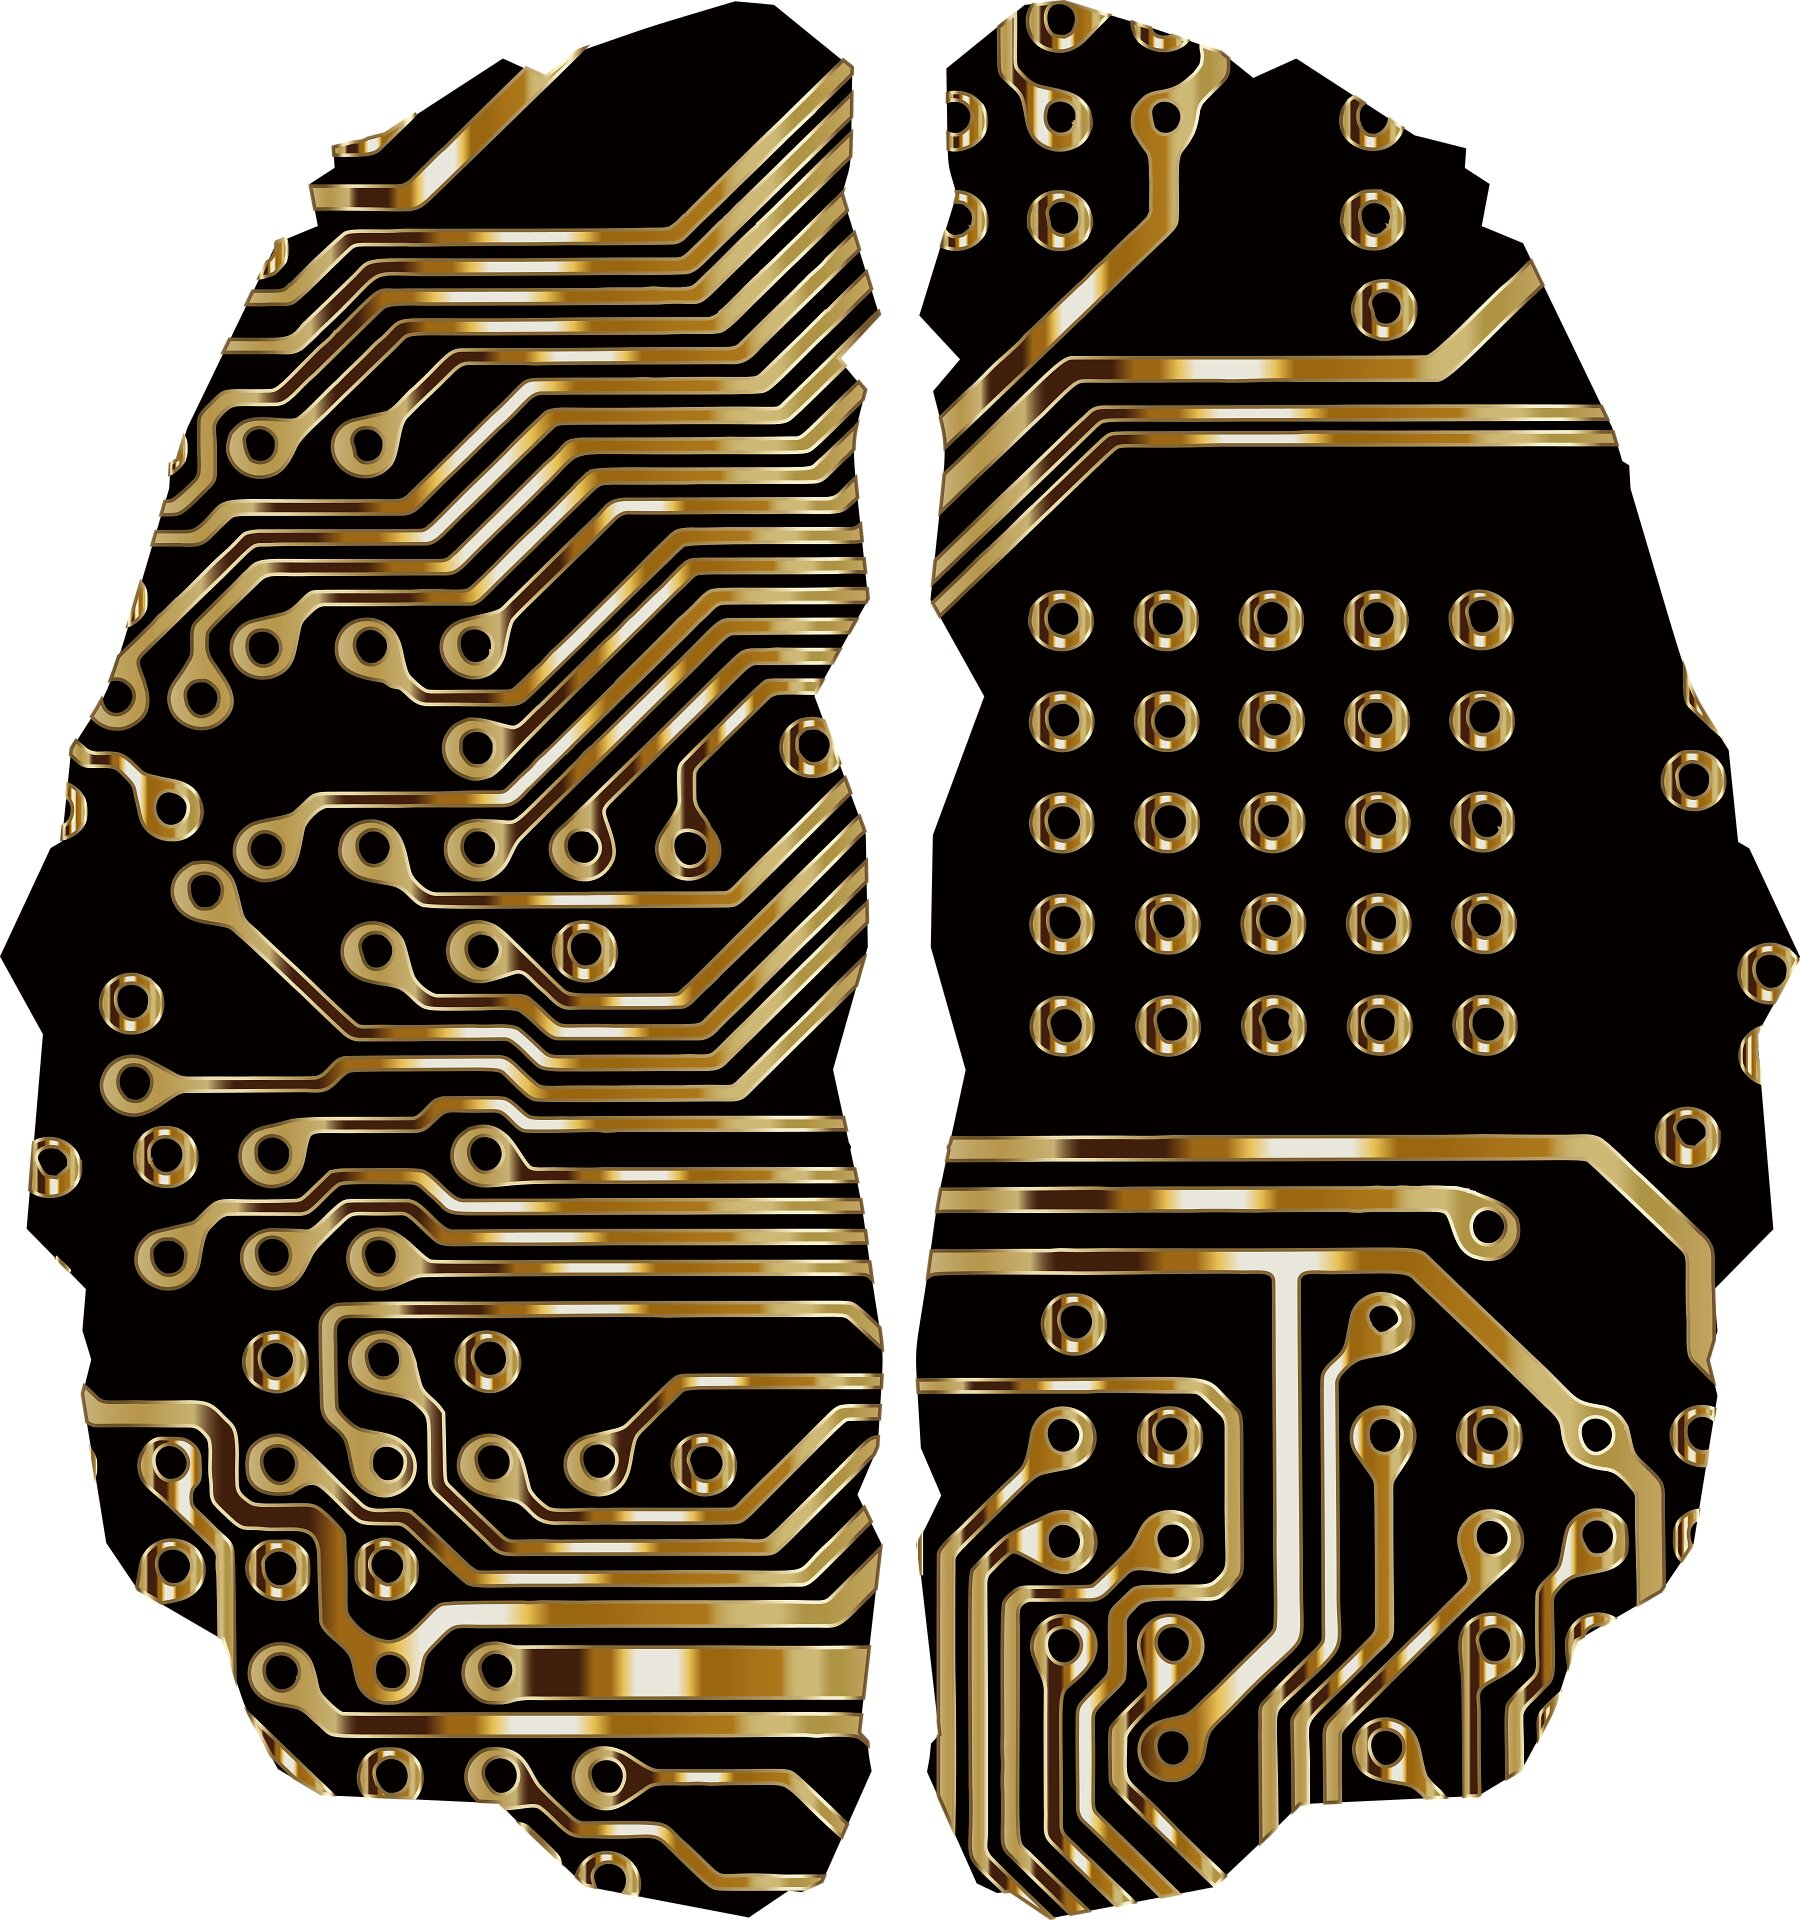 New approach to AI offers more certainty in the face of uncertainty